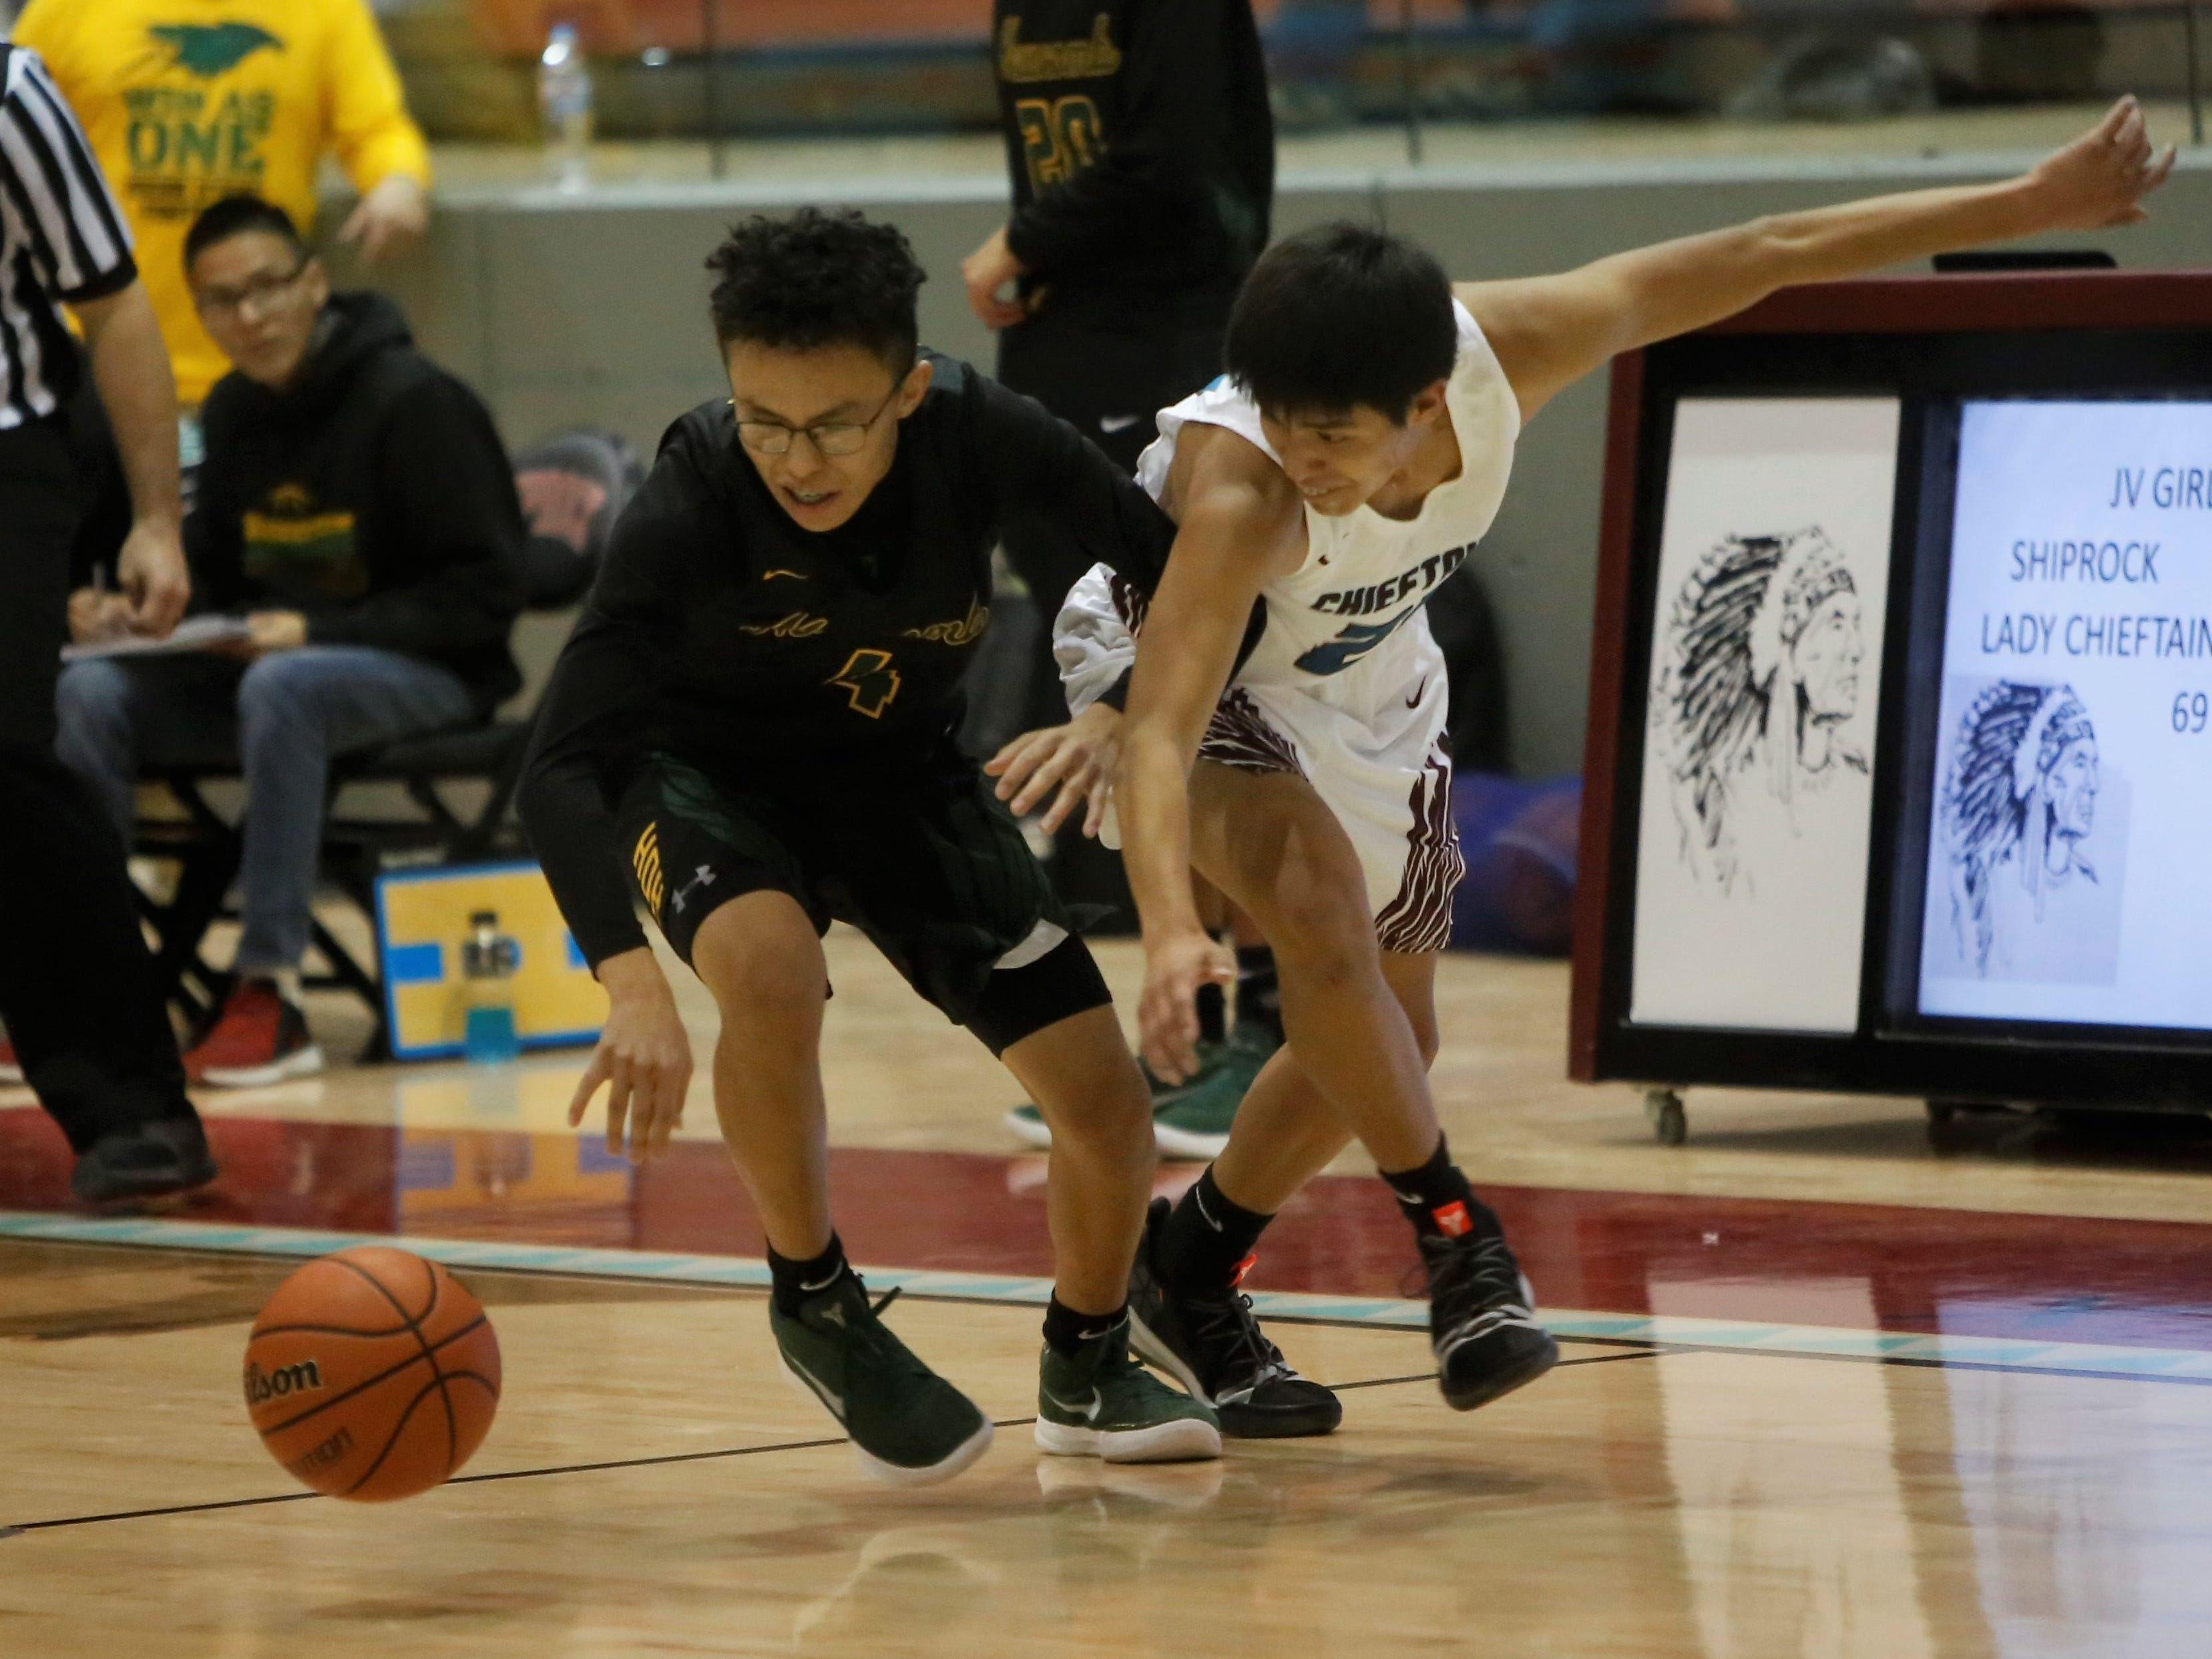 Newcomb's Jared John and Shiprock's Takobe Charley chase after a loose ball during Thursday's game at the Chieftain Pit in Shiprock.